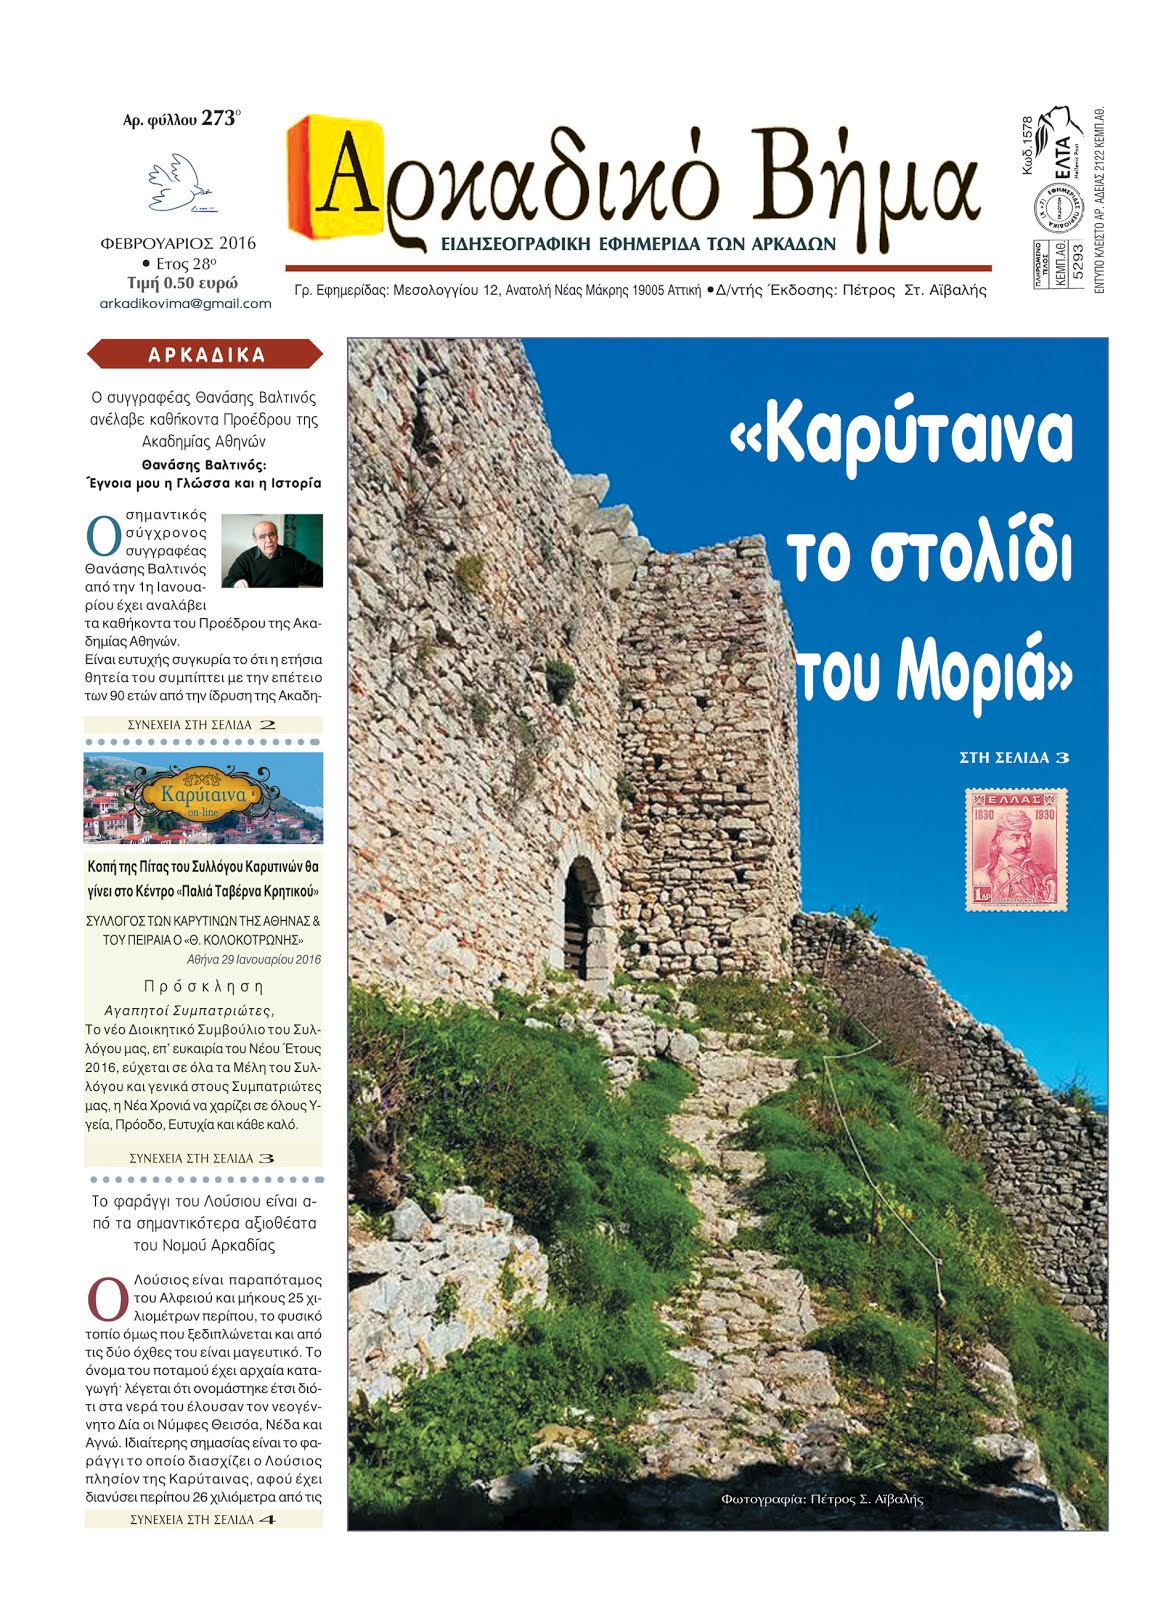 Κυκλοφόρησε το φύλλο Φεβρουαρίου 2016